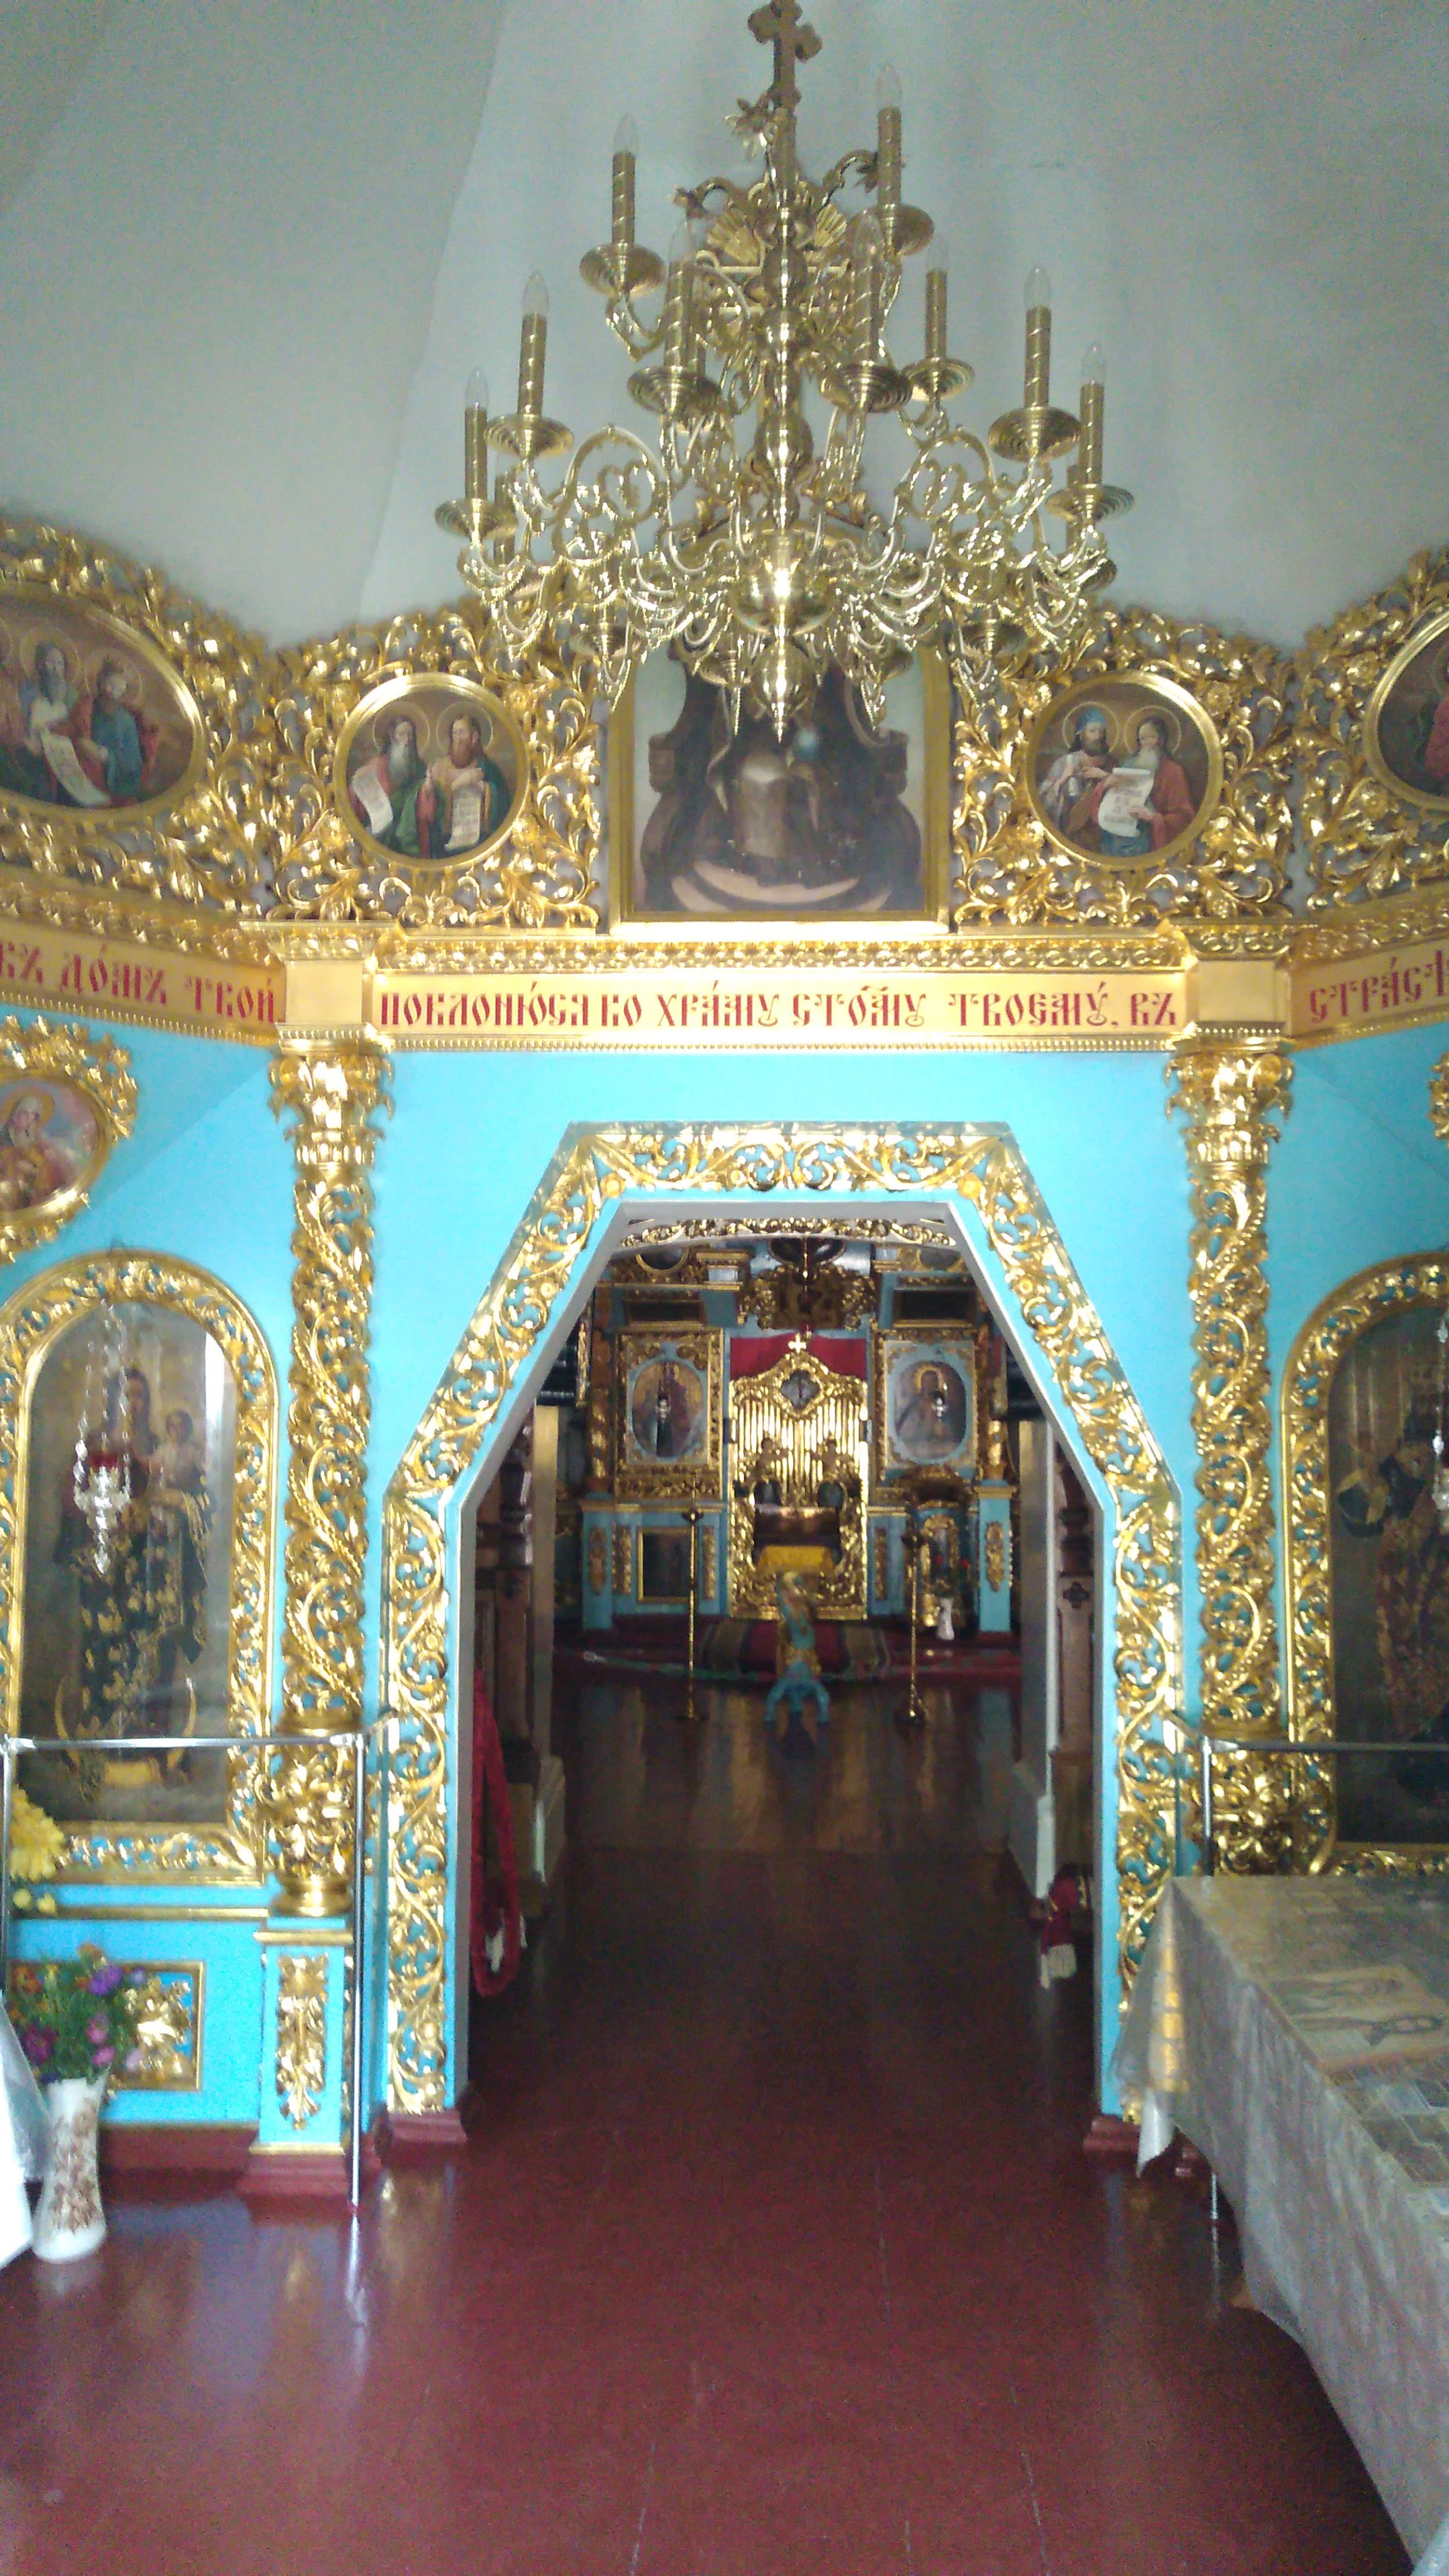 A look inside Saviour Church much what Peter the Great woukd have seen